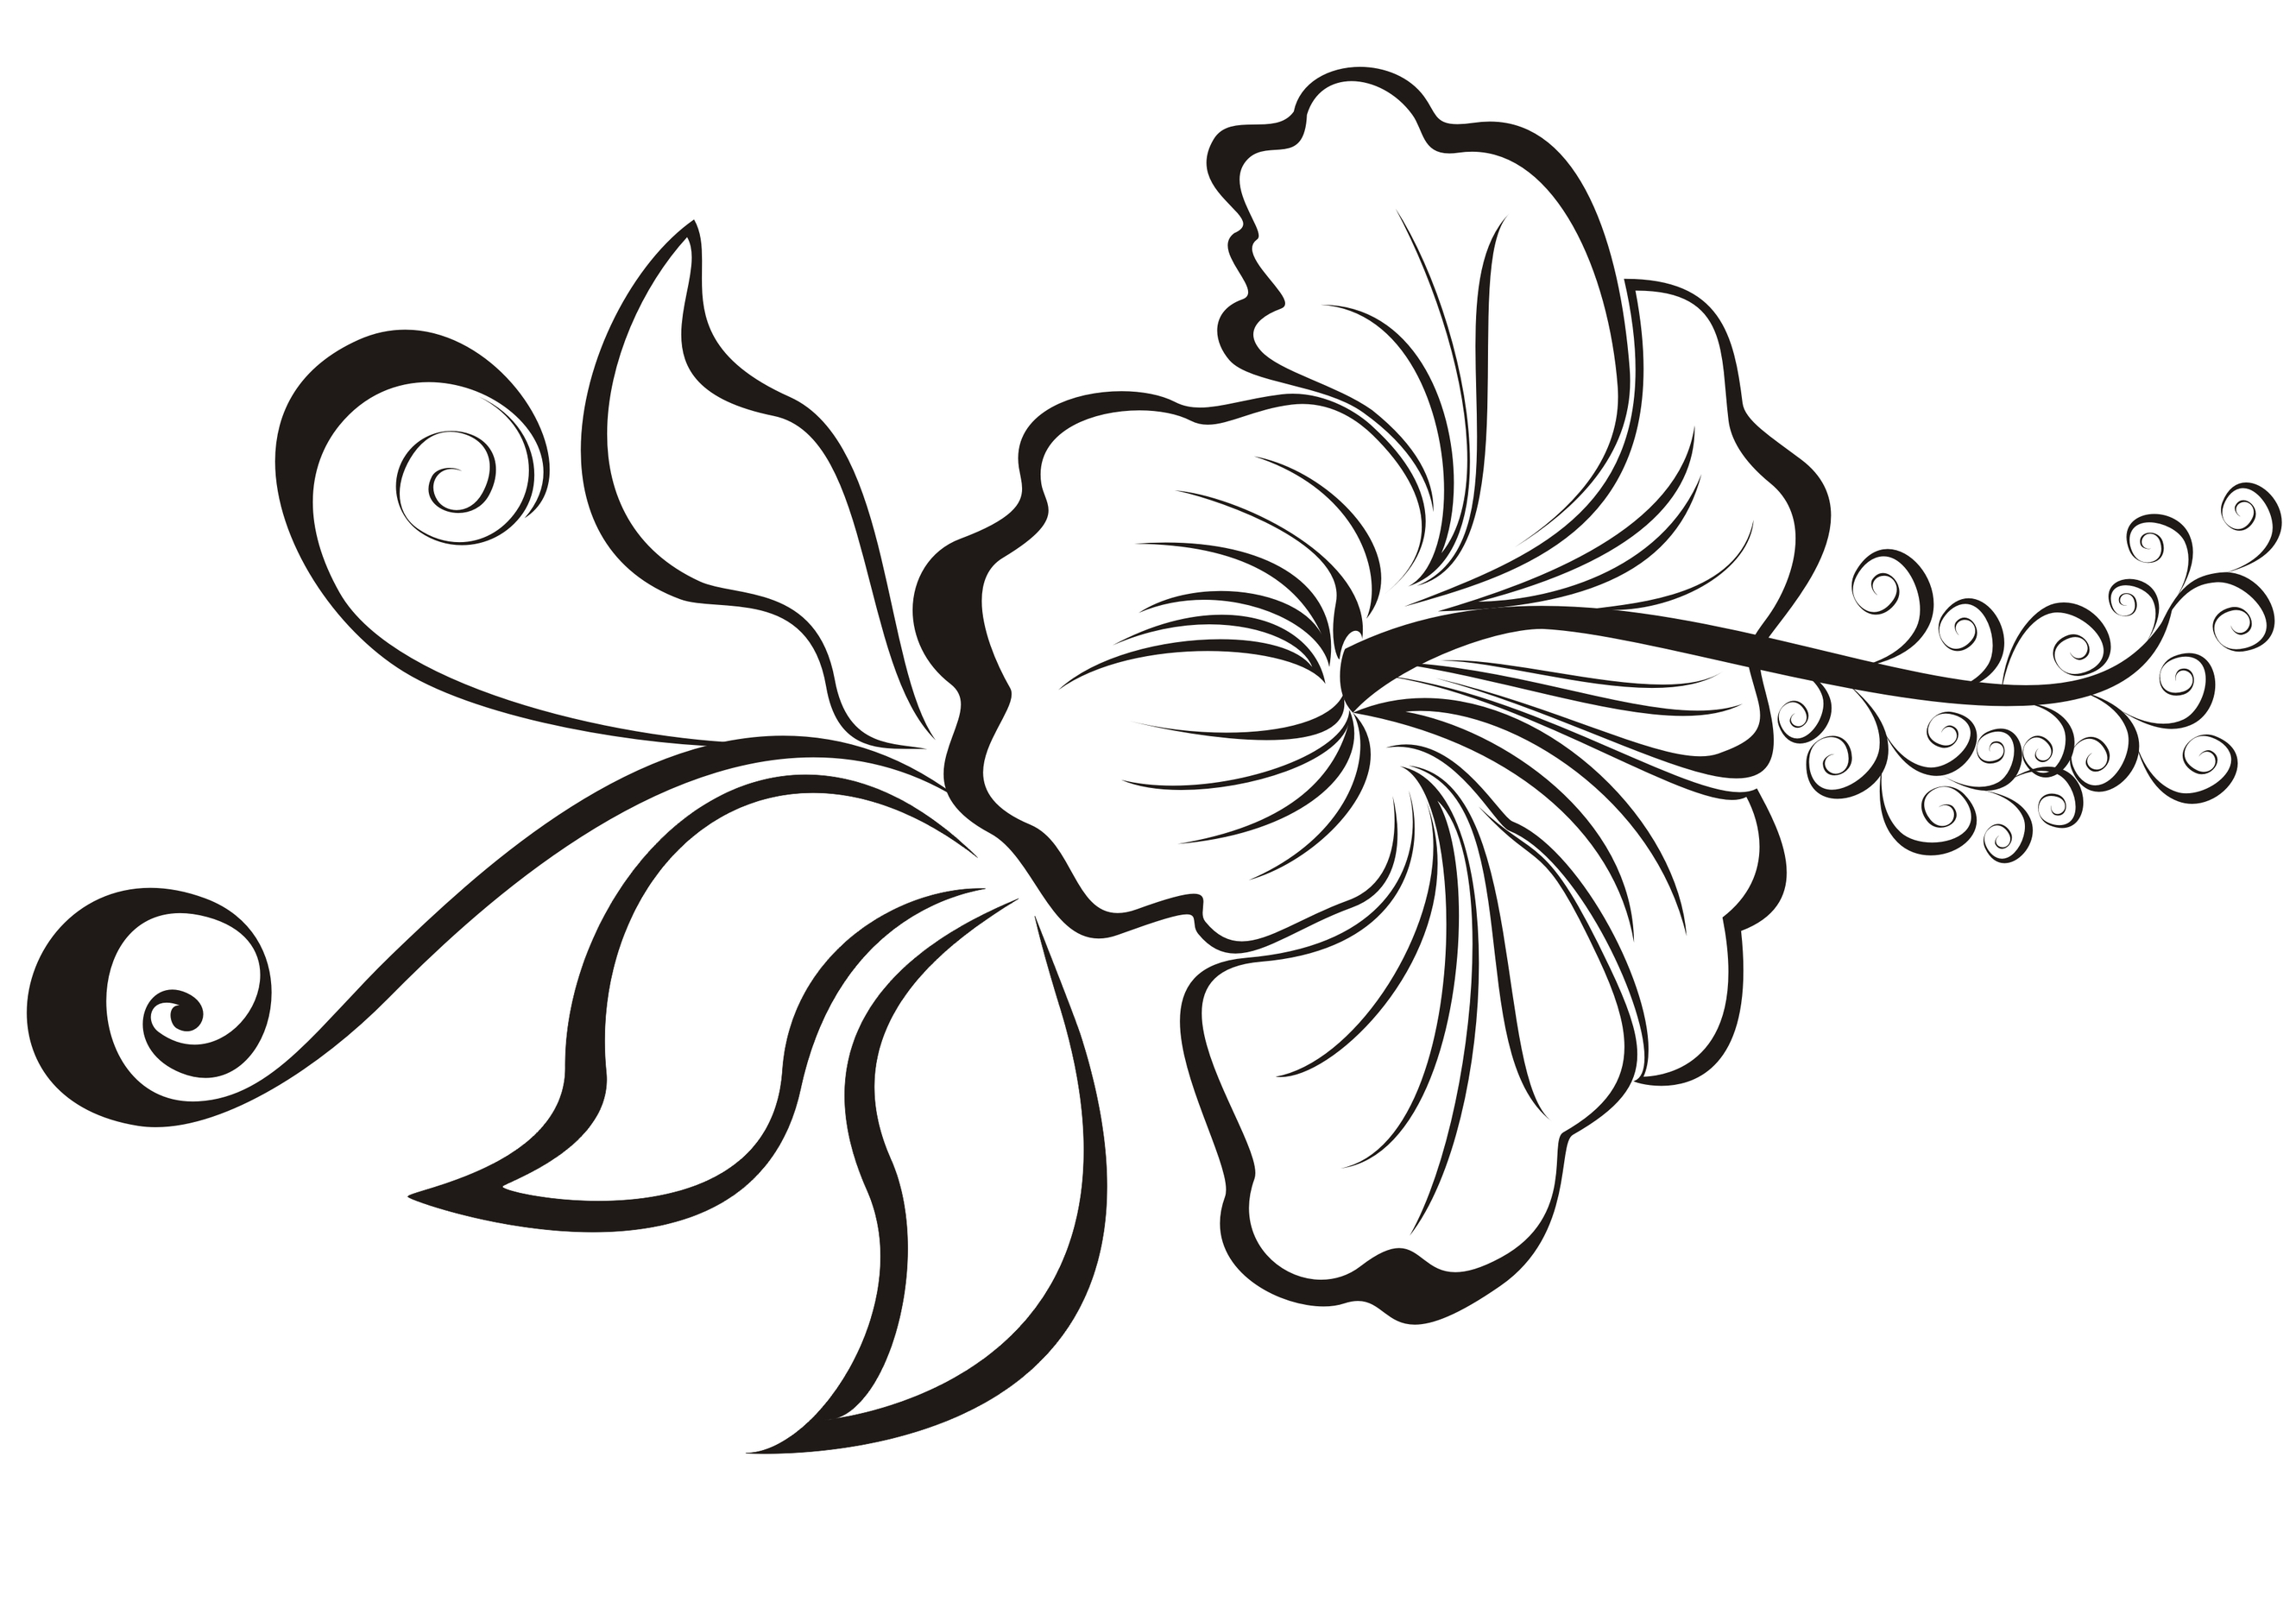 Hibiscus flower designs cliparts hibiscus flower tattoo designs and meaning izmirmasajfo